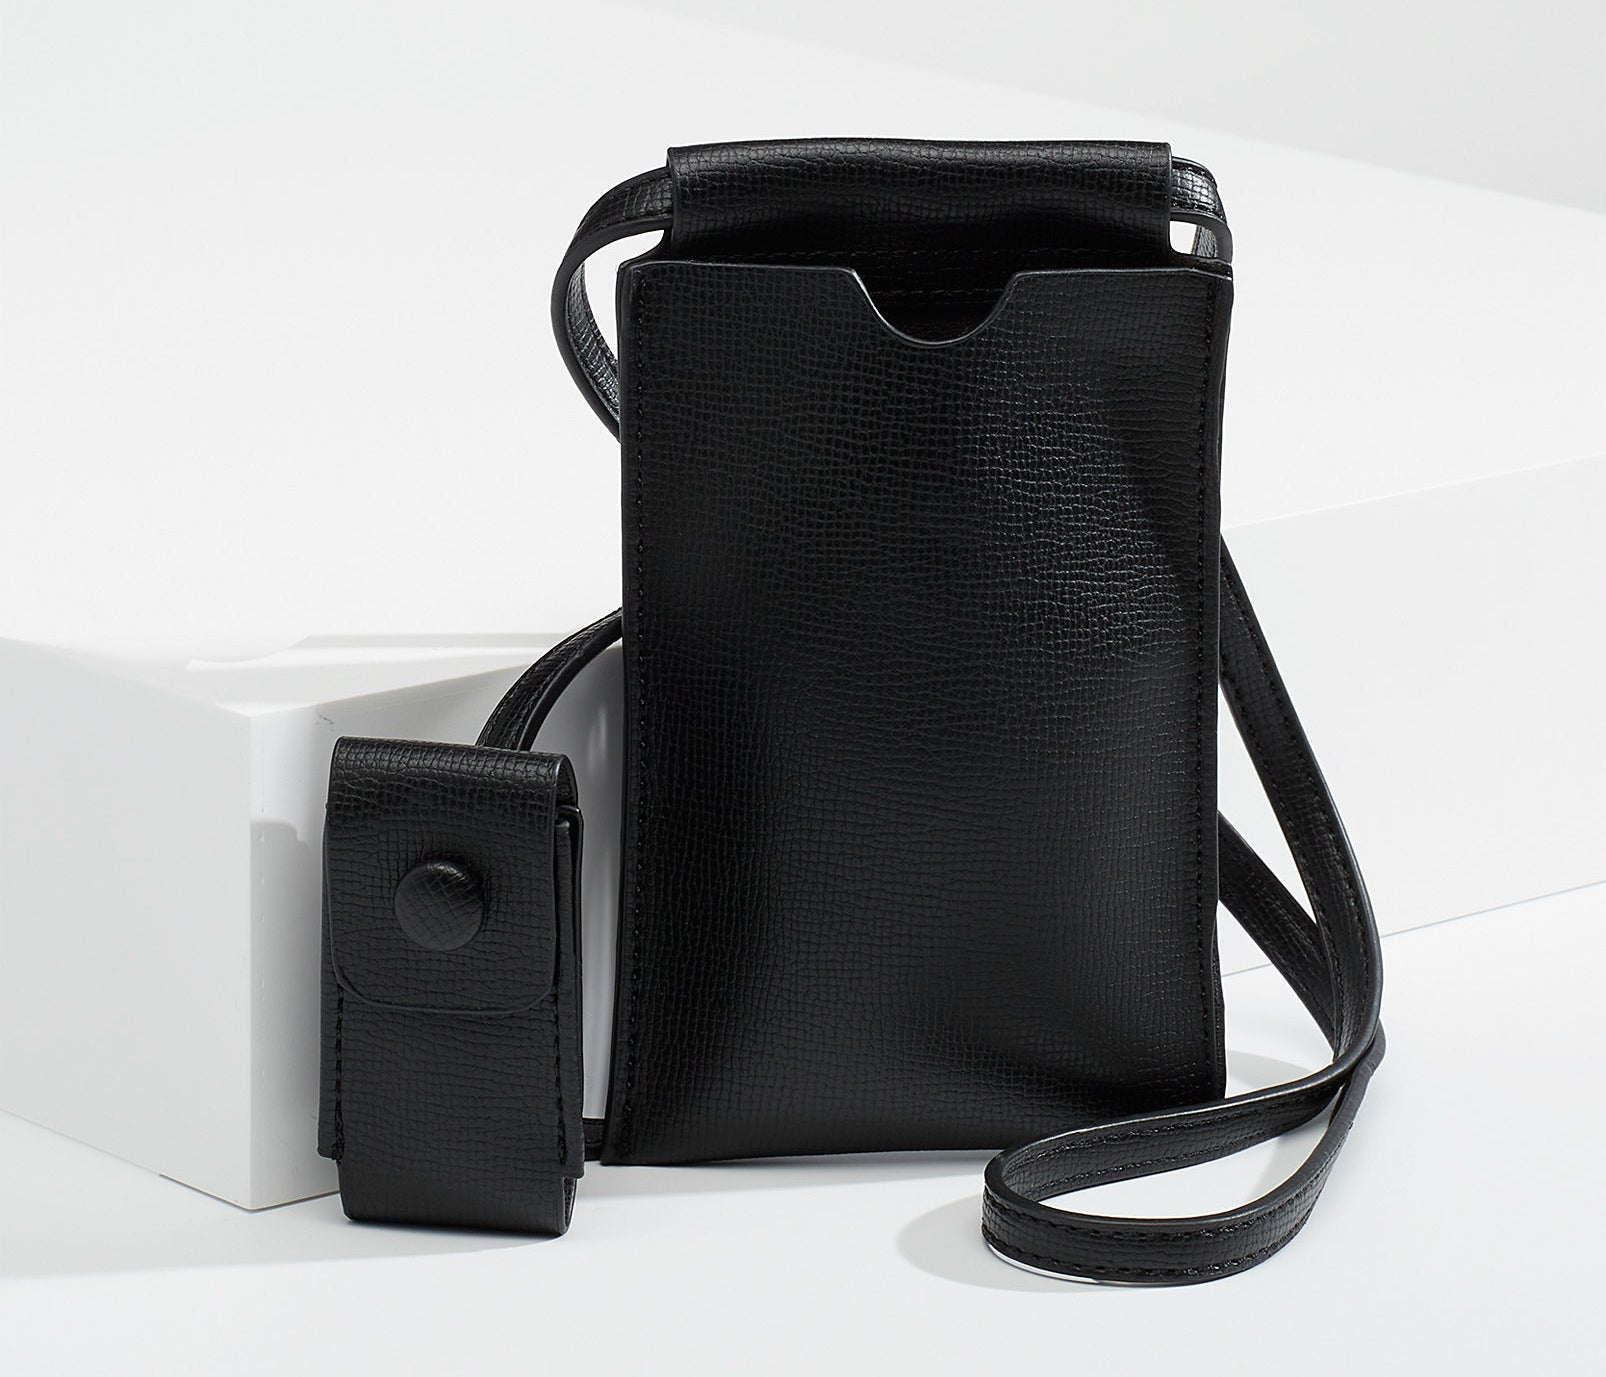 A small faux leather bag with a tiny sleeve on the strap for lip balm